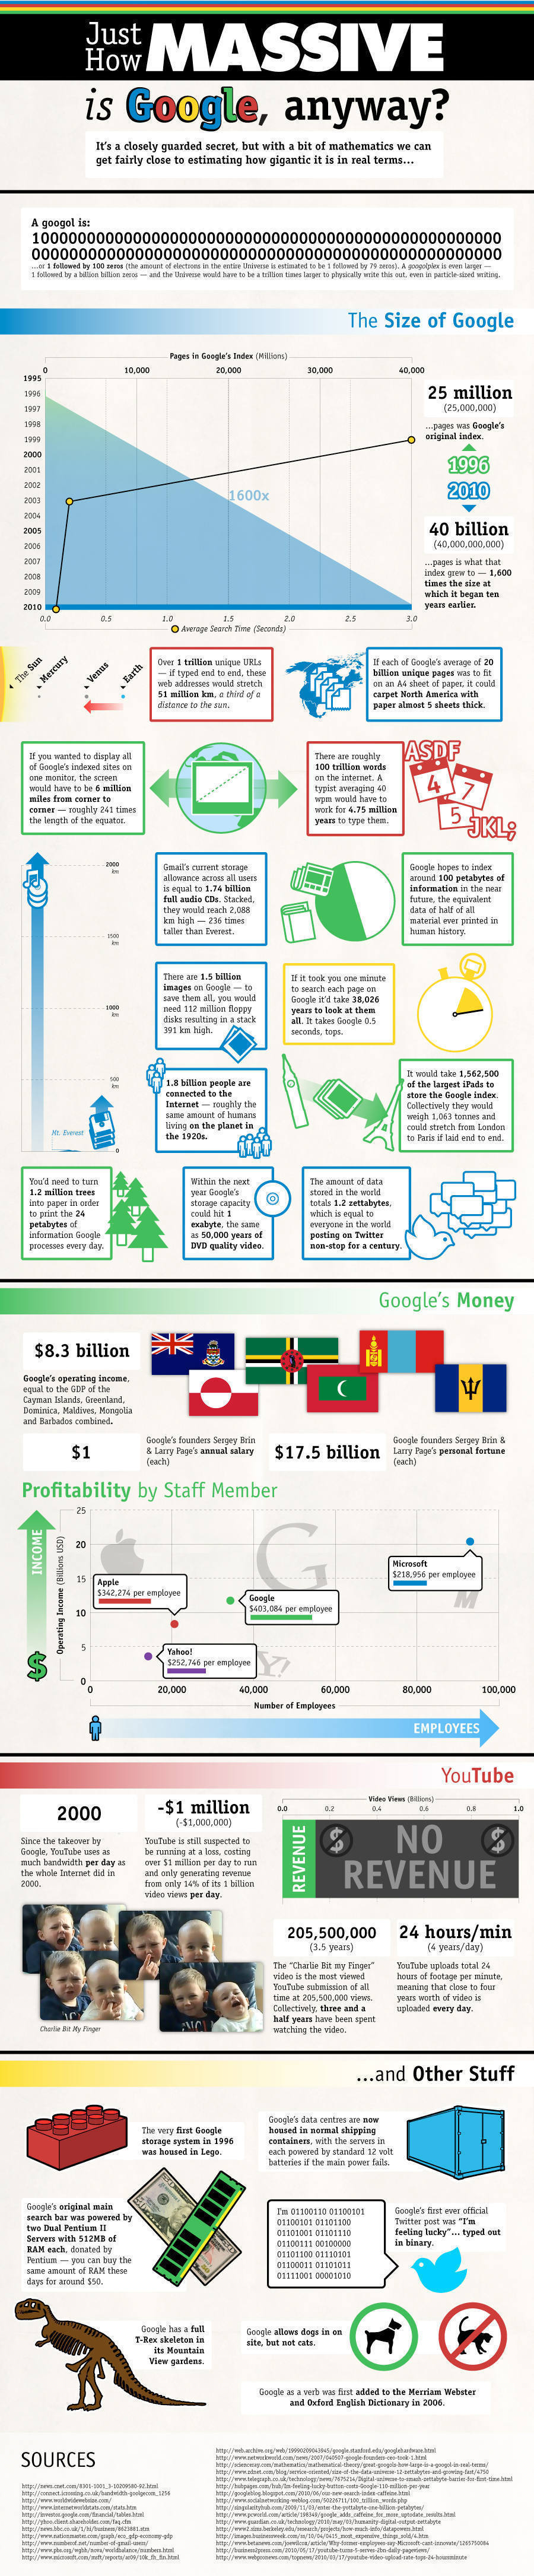 How Massive is Google (infographic)